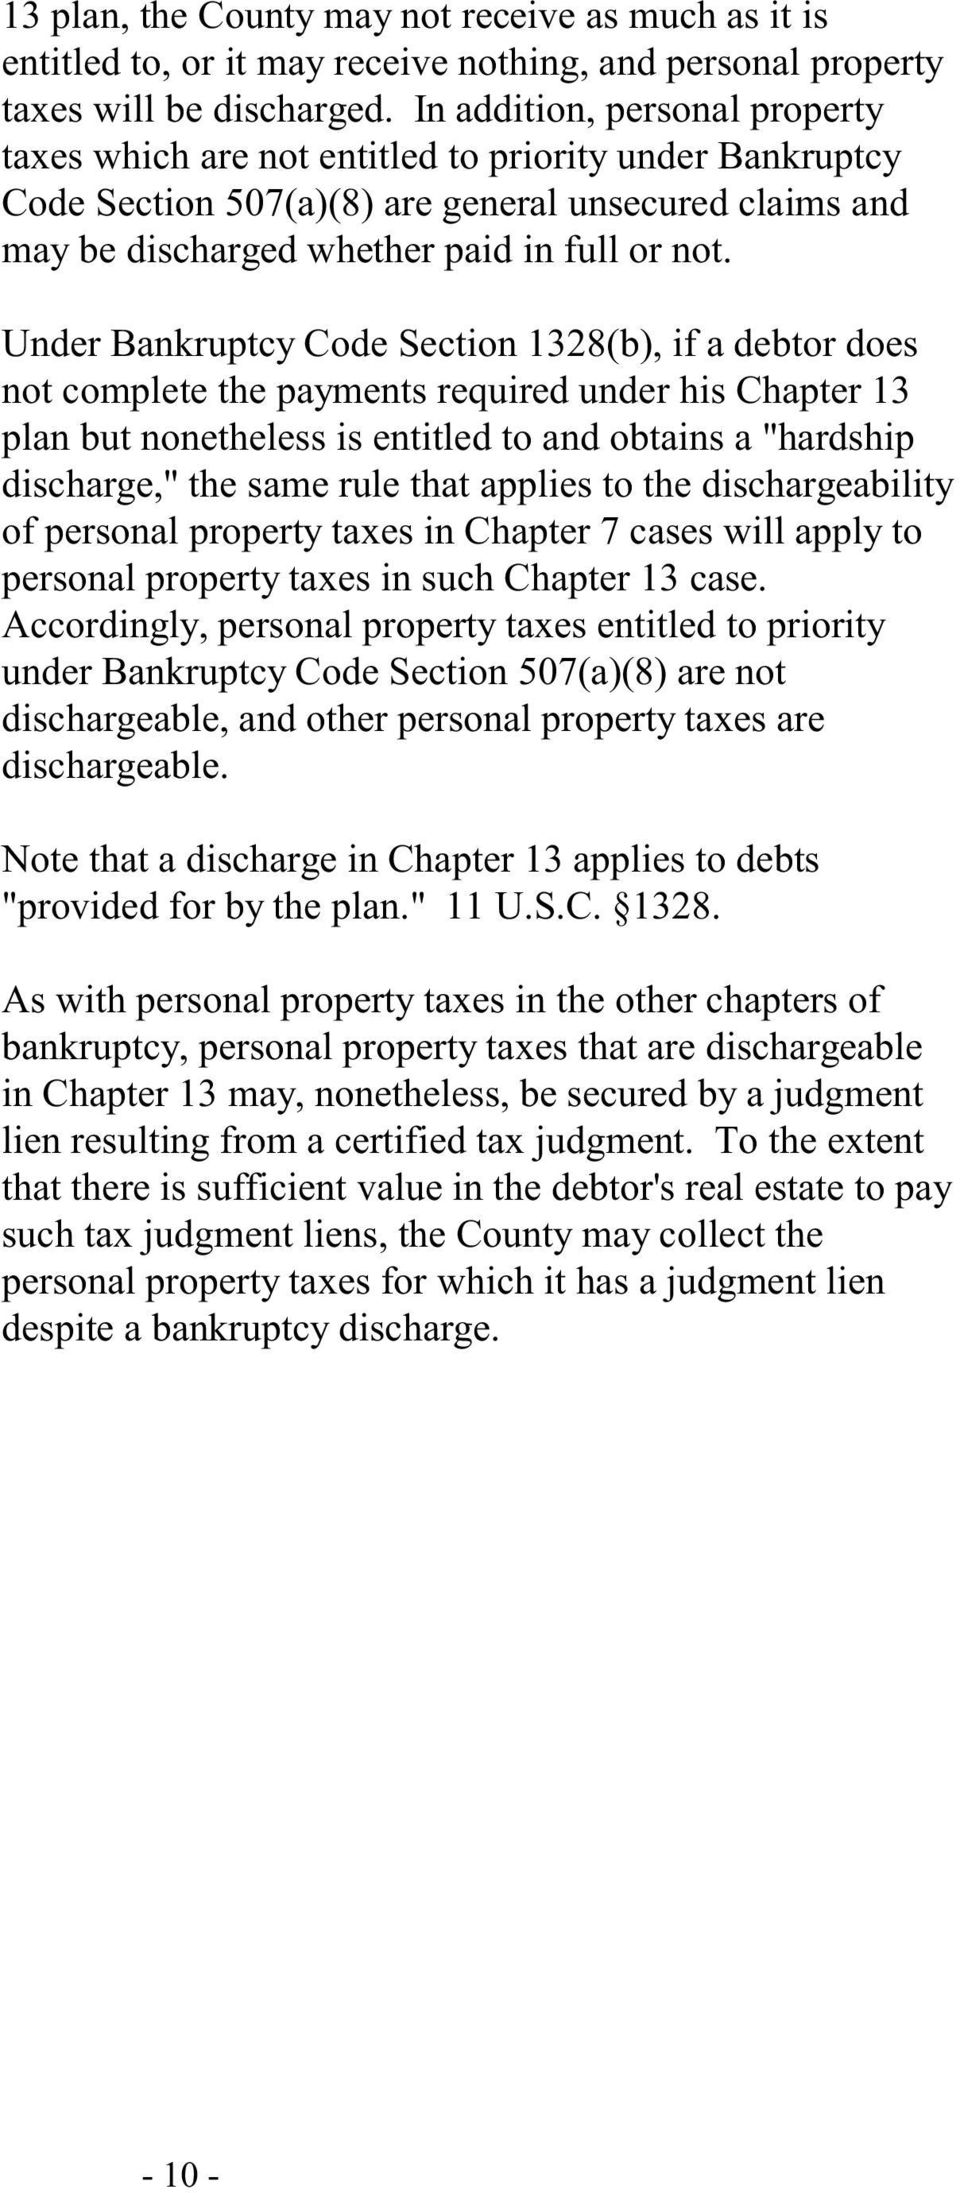 "Under Bankruptcy Code Section 1328(b), if a debtor does not complete the payments required under his Chapter 13 plan but nonetheless is entitled to and obtains a ""hardship discharge,"" the same rule"